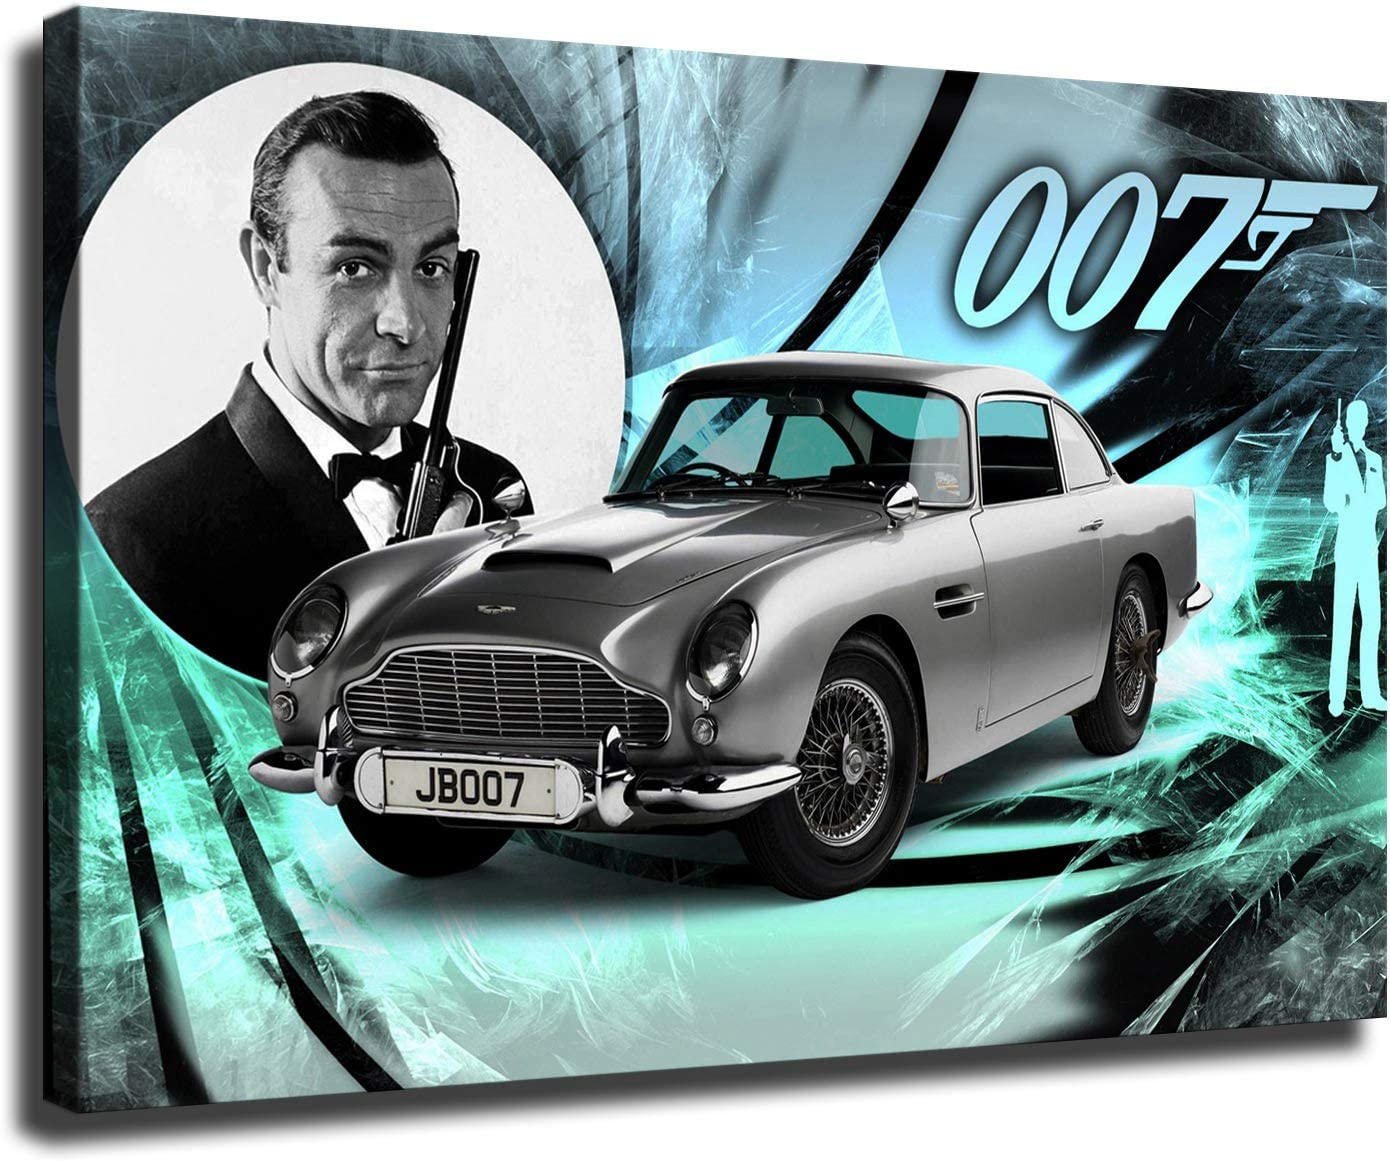 Details about  /B-203 New Sean Connery Classic Movie Poster Art Fabric 40 24x36